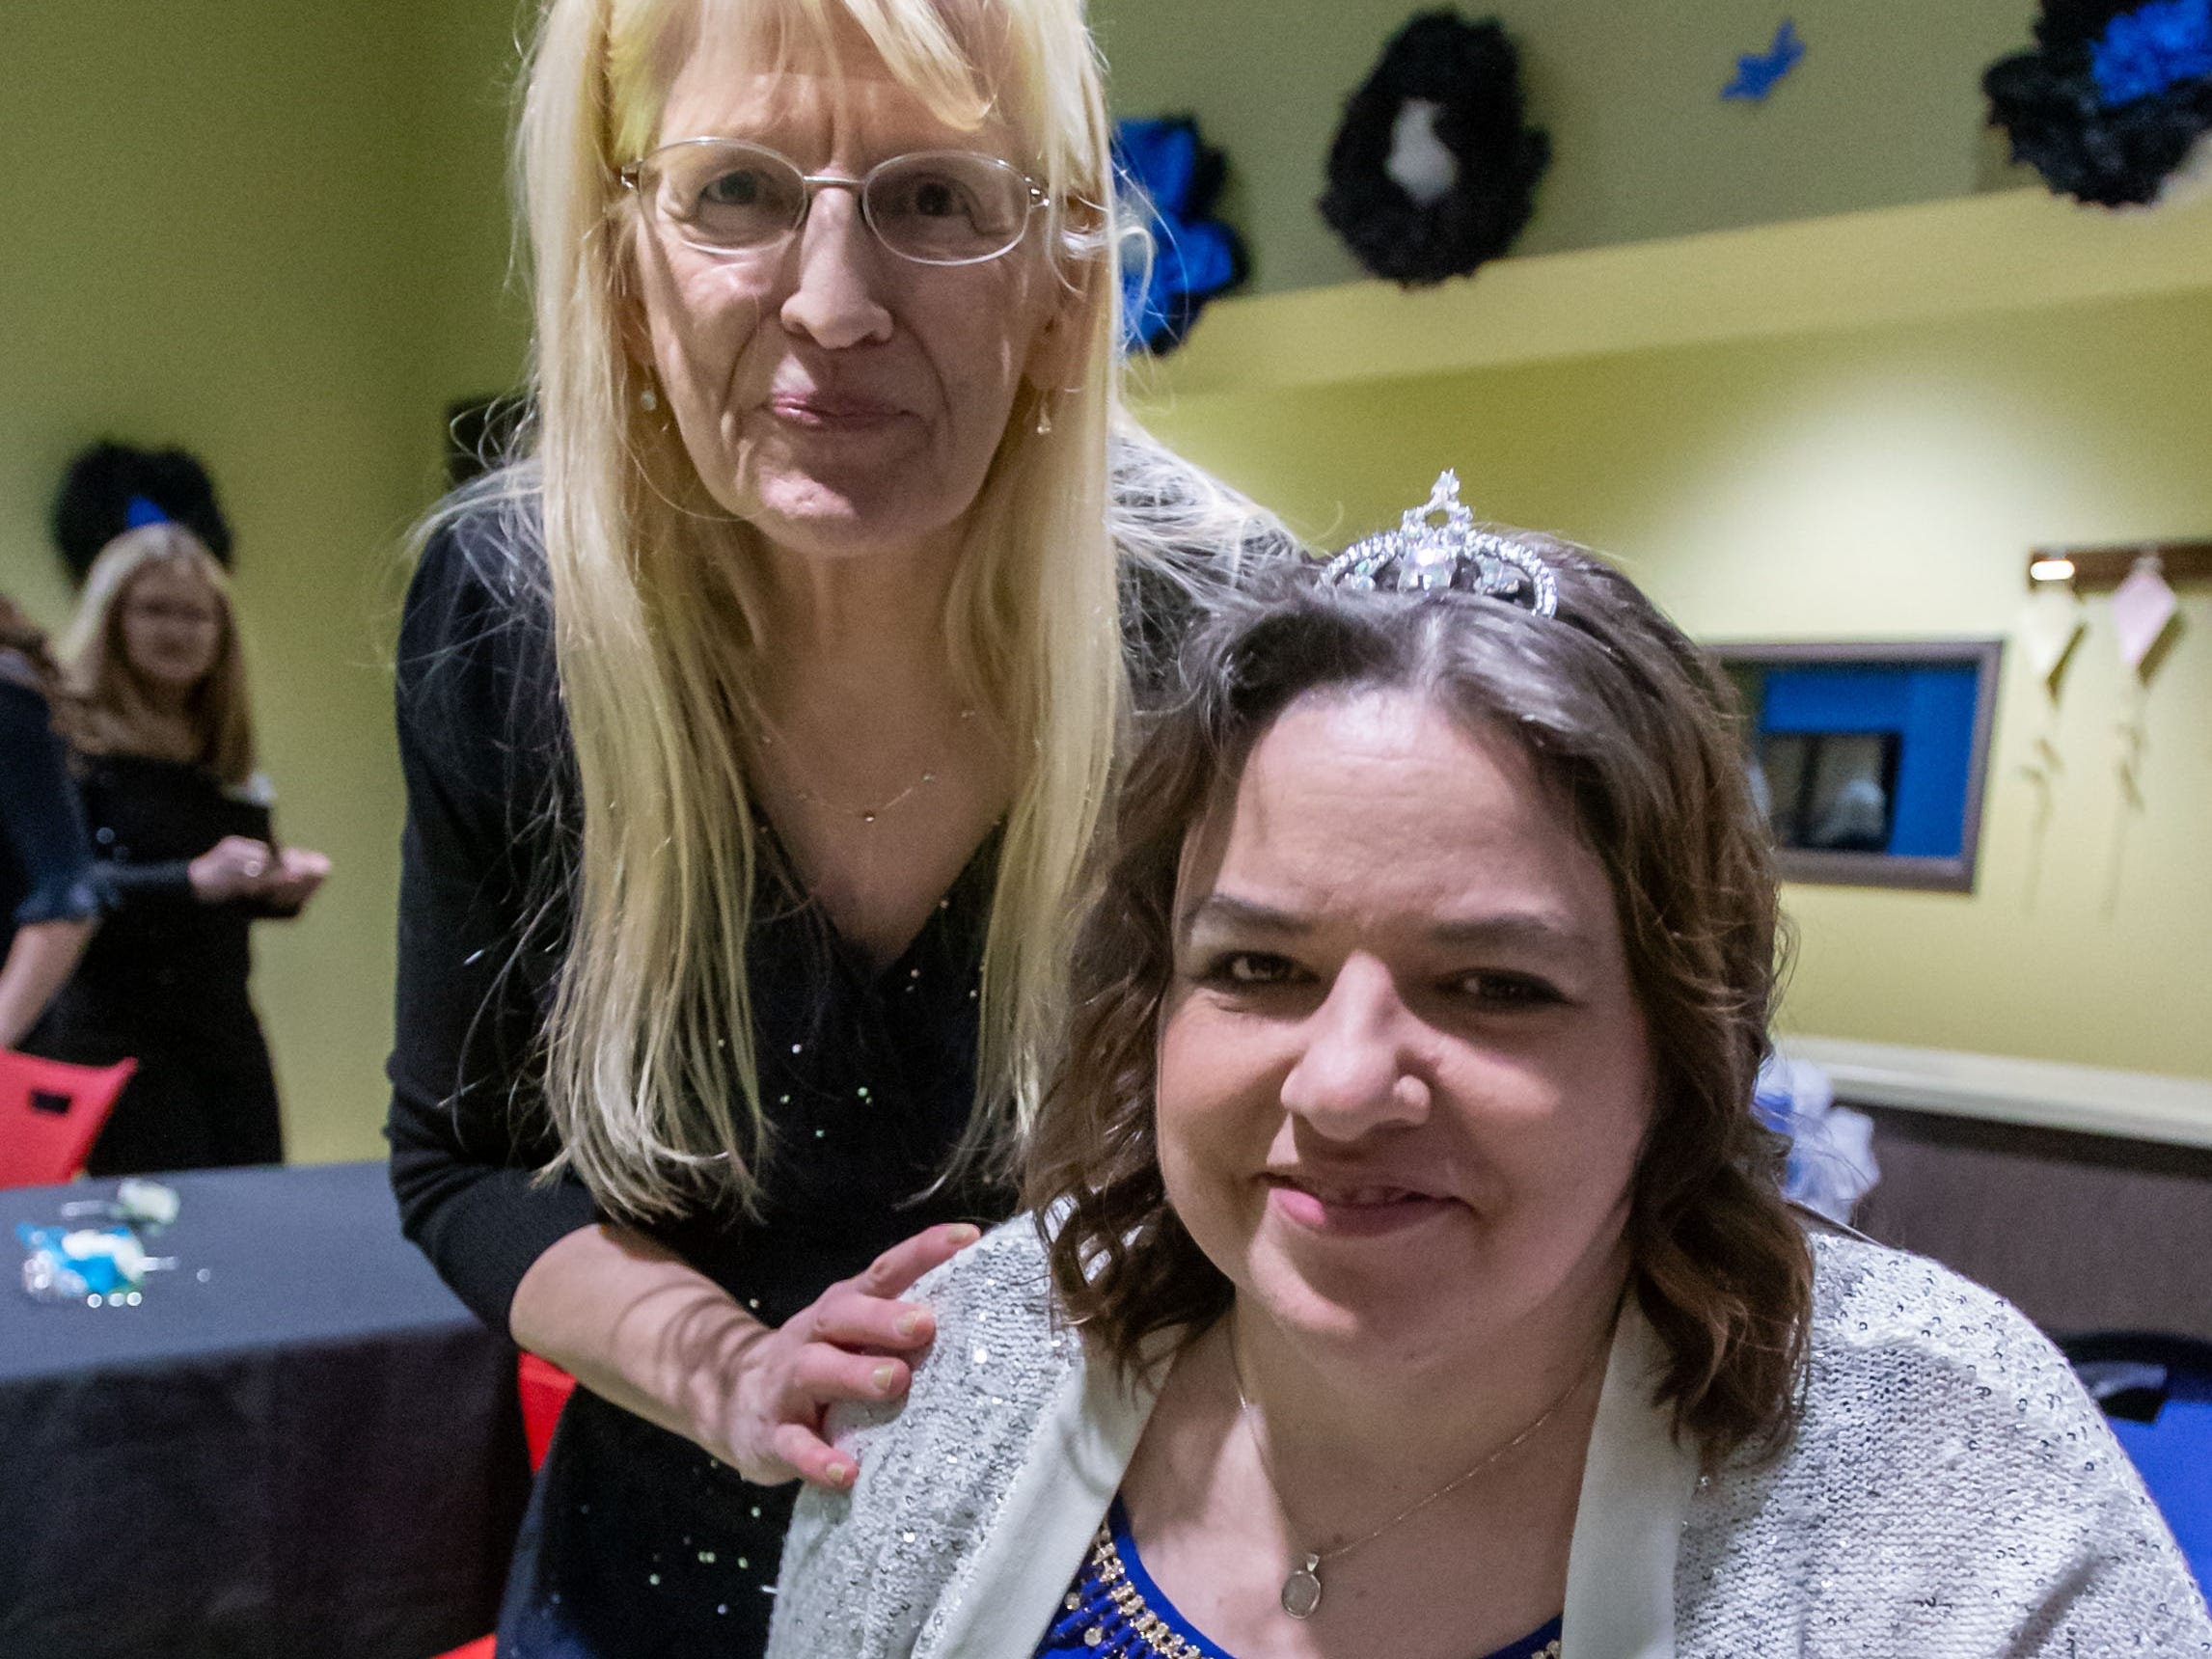 Brooke H. is fitted with her prom queen crown by volunteer Genevieve Sartler during the Night to Shine Prom hosted by Brooklife Church in Mukwonago on Friday, Feb. 8, 2019. Every guest of Night to Shine receives the royal treatment, including hair and makeup, limousine rides, corsages and boutonnieres, a catered dinner, karaoke and dancing, all leading up to the moment when each guest is crowned king or queen of the prom.